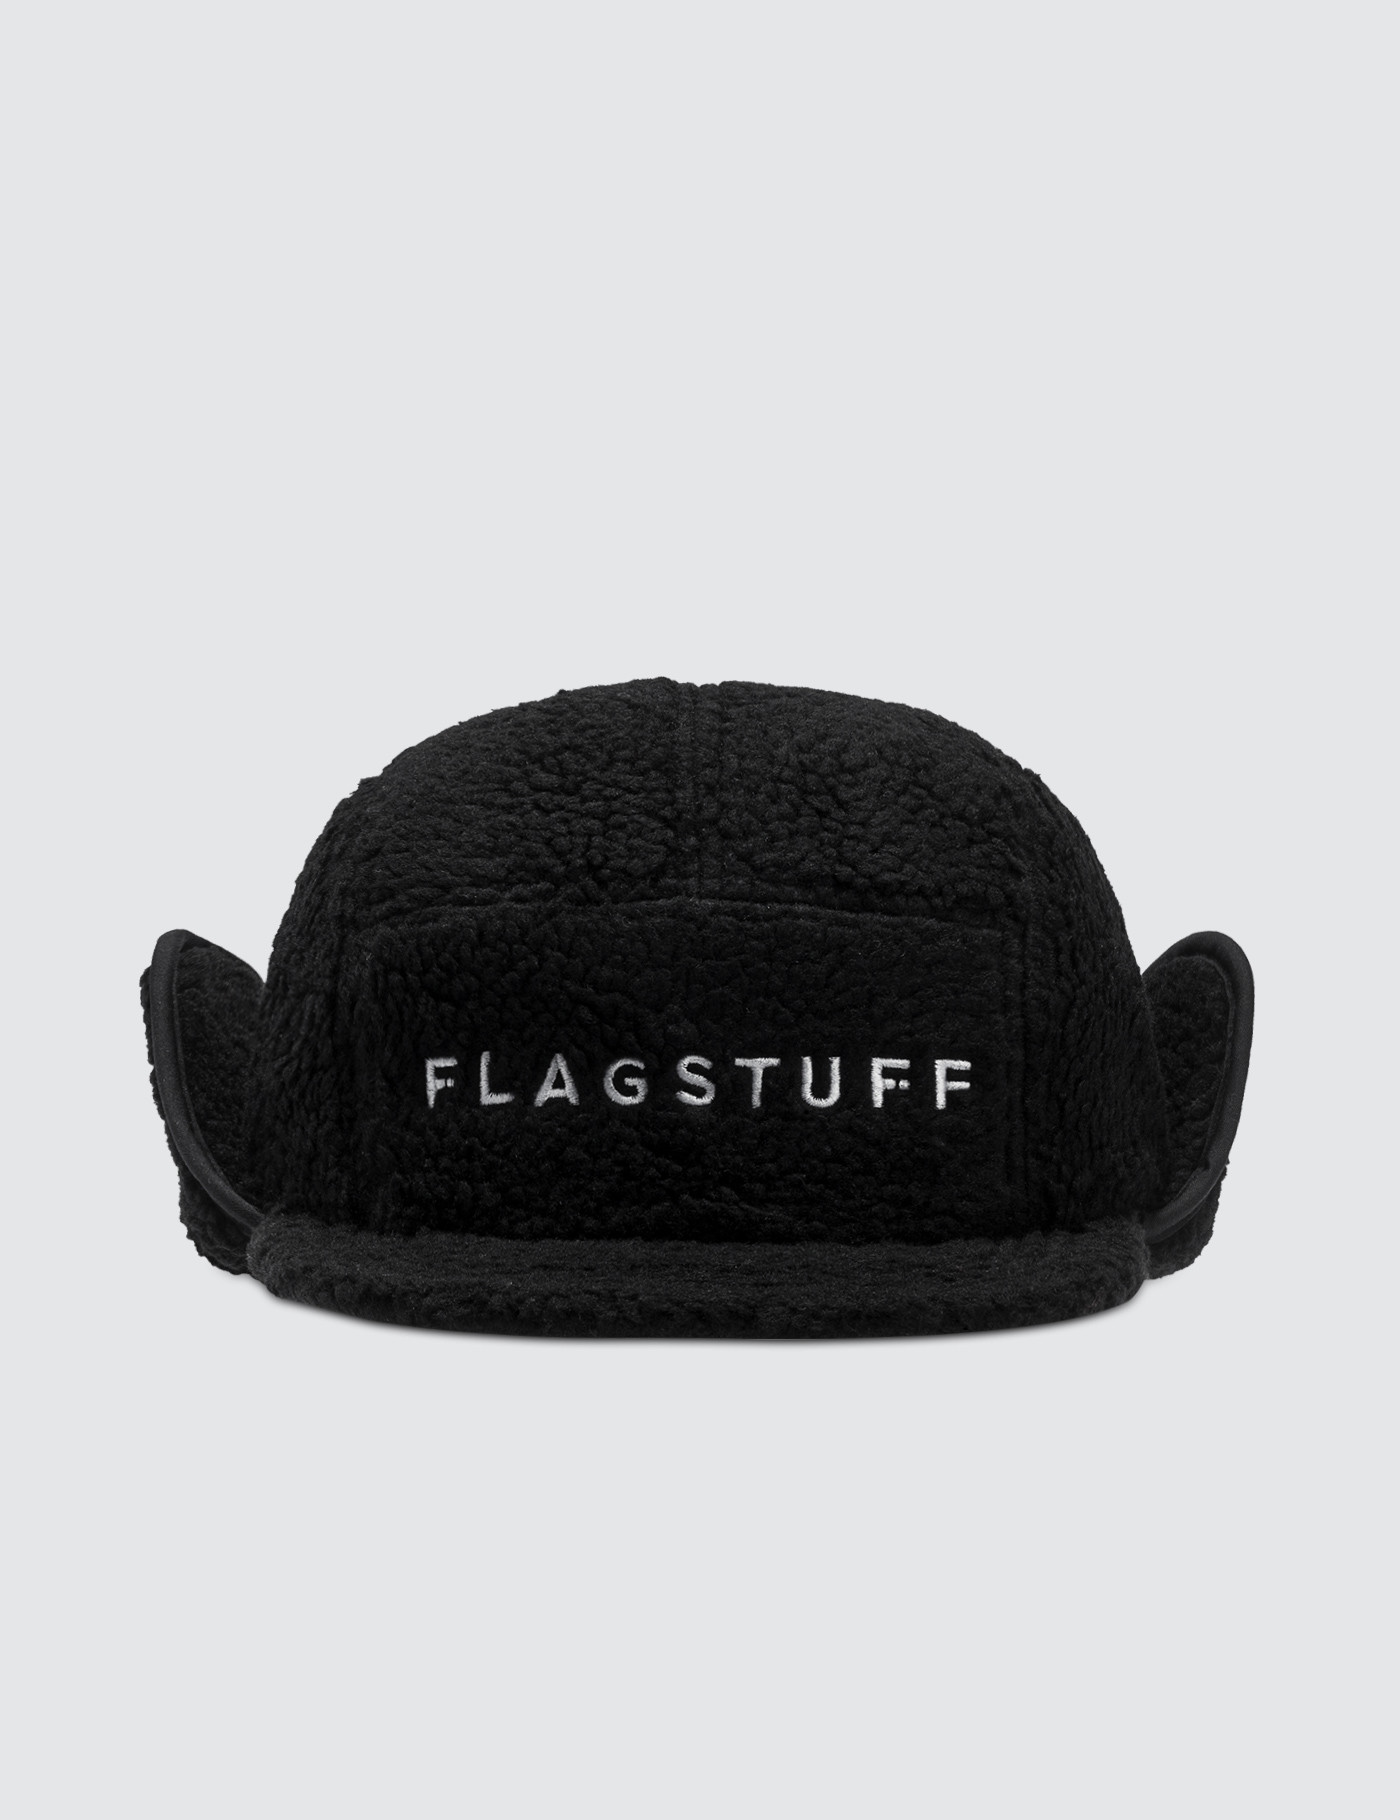 "Flagstuff ""F-LAGSTUF-F"" Fleece Camp Cap"